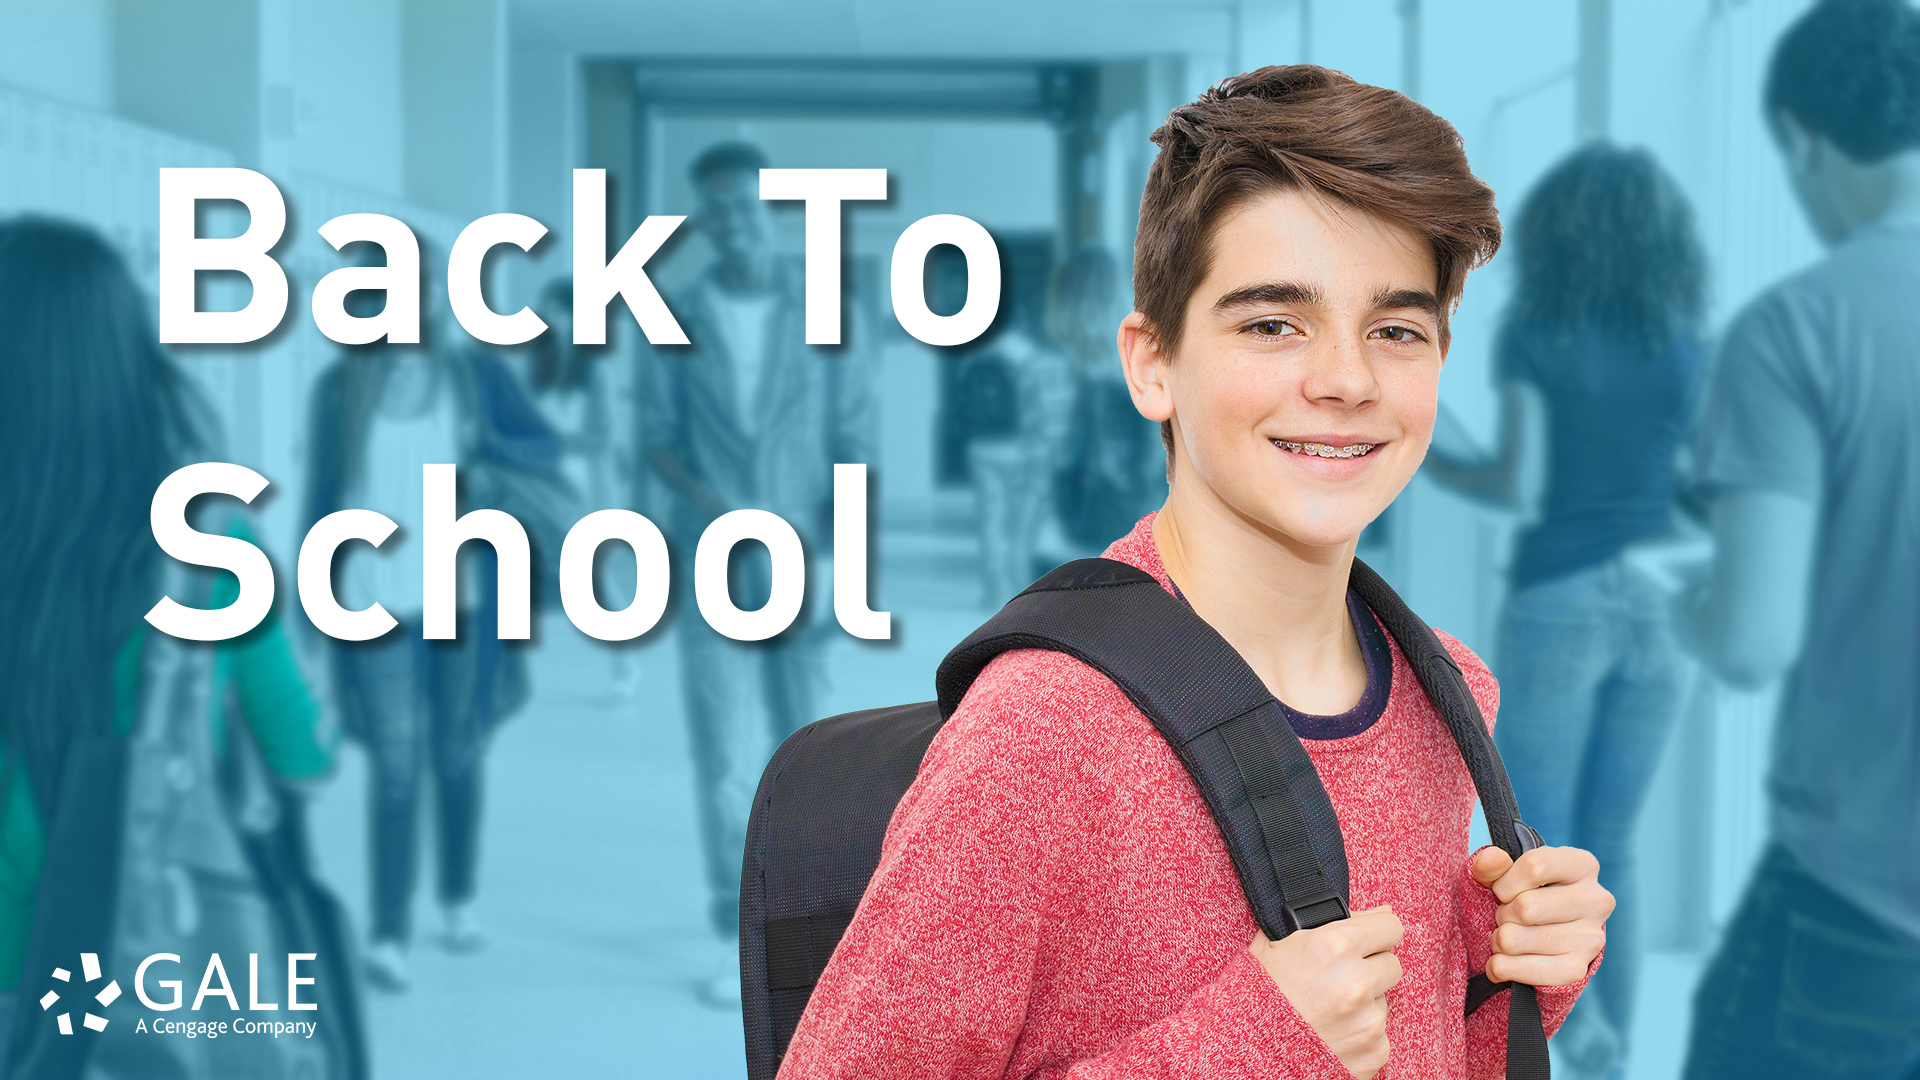 Back To School with POWER Library Thumbnail